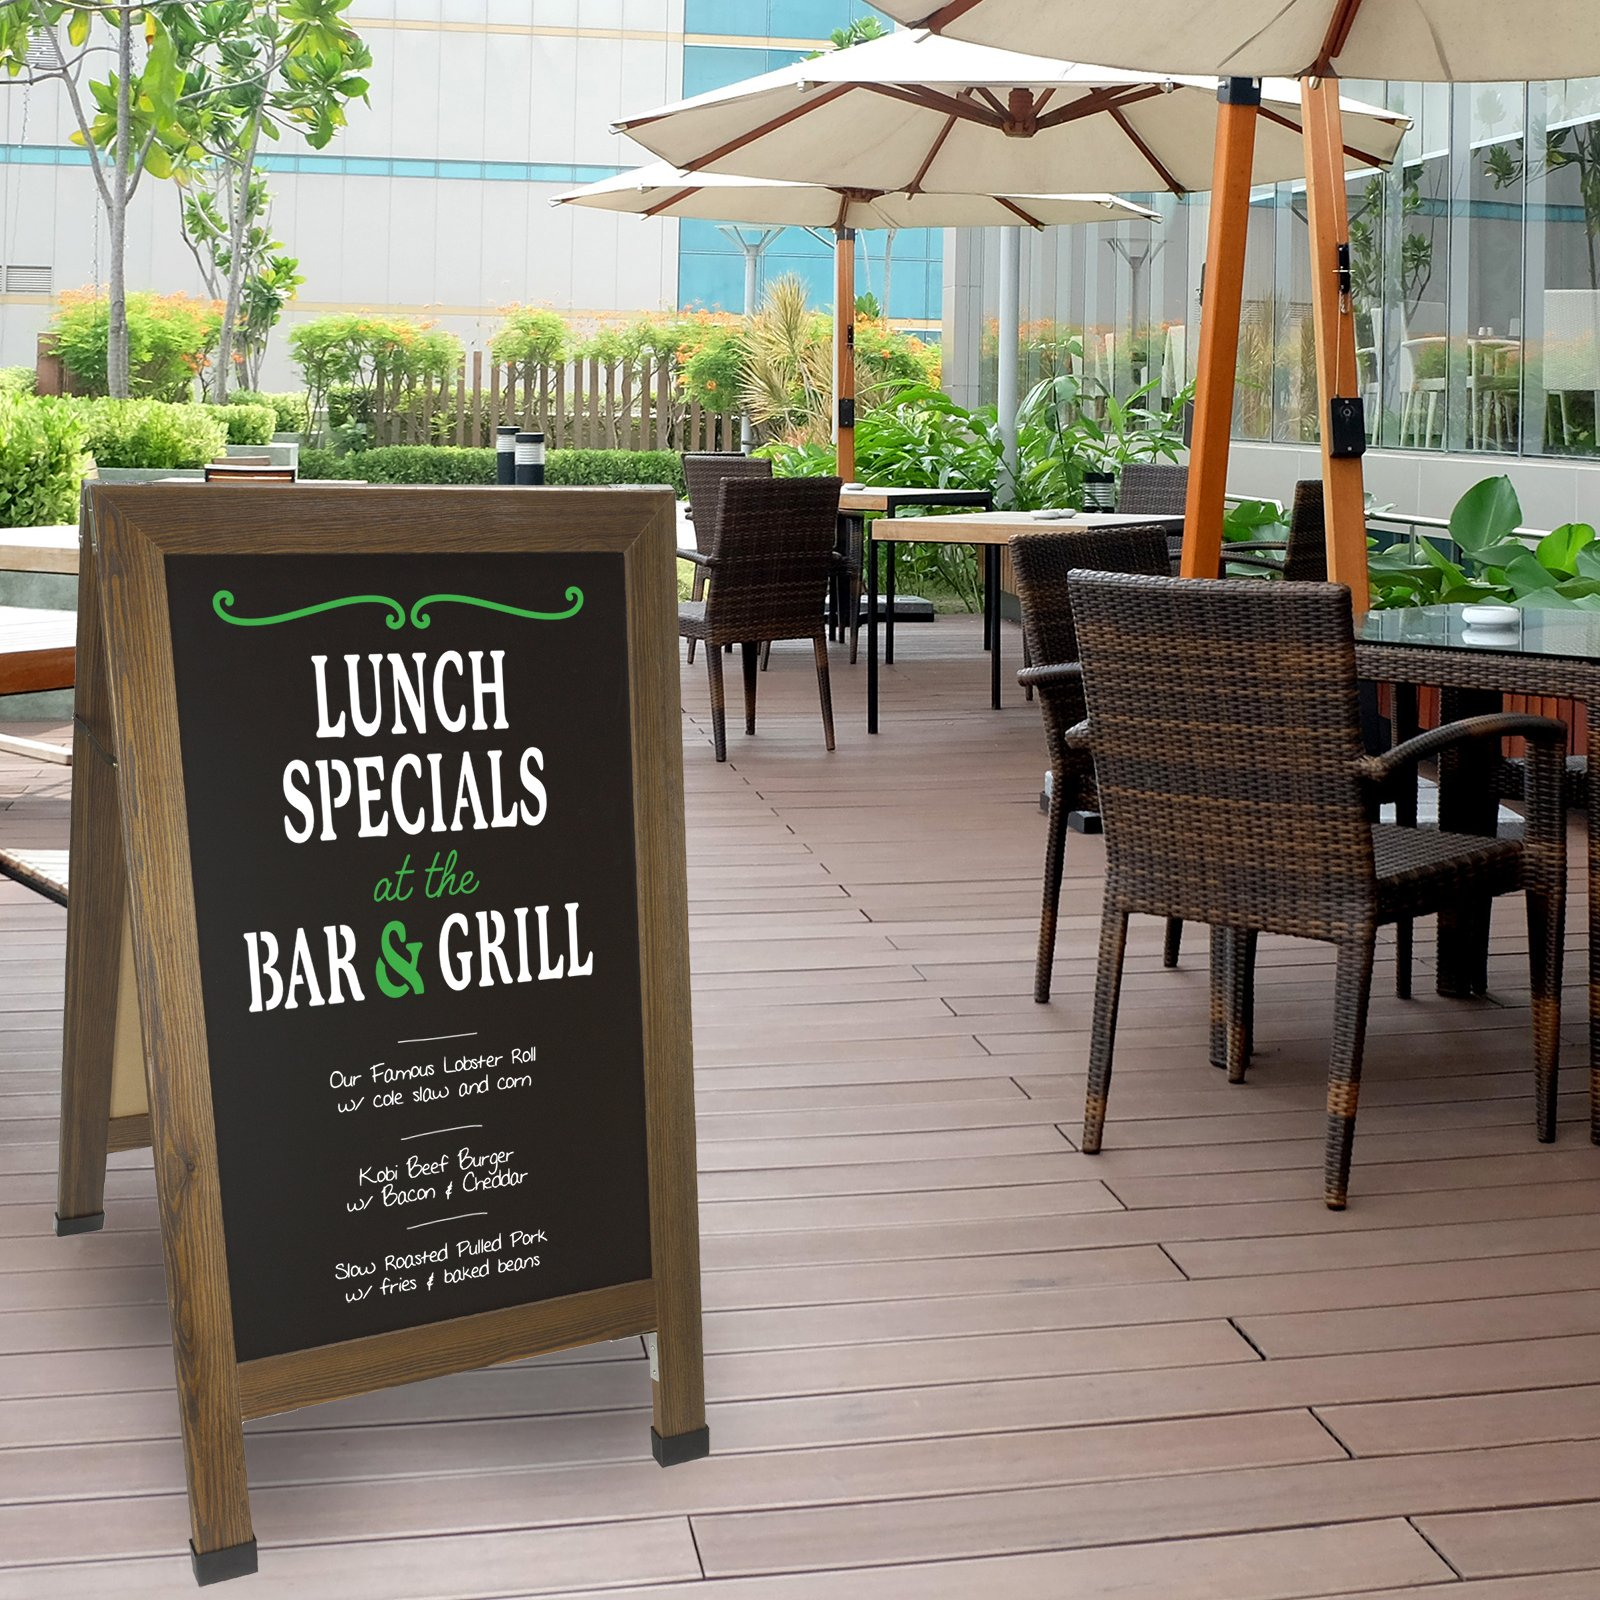 Sandwich Board Sidewalk Chalkboard Sign: REINFORCED, HEAVY-DUTY / 10 CHALK MARKERS / 40 PIECE STENCIL SET / CHALK / ERASER / DOUBLE SIDED / LARGE 40x23 Chalk Board Standing Sign A-Frame (Rustic) by Excello Global Products (Image #7)